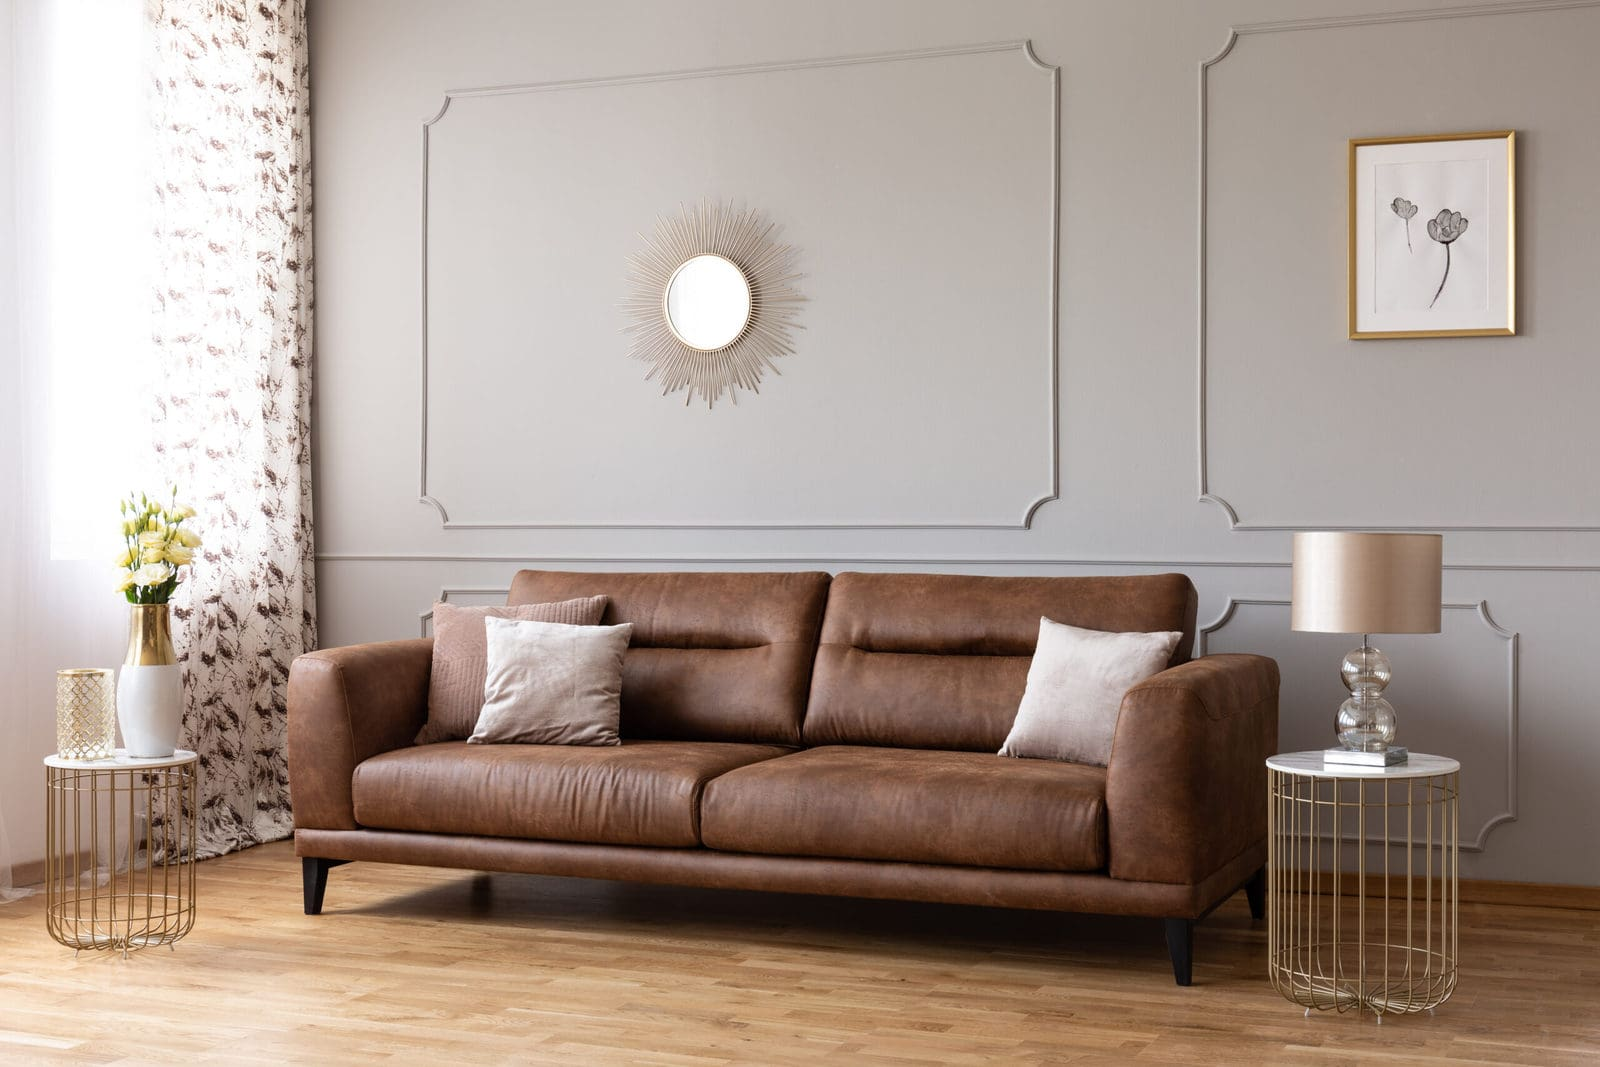 A Leather Sofa In An Elegant Living Room (1)